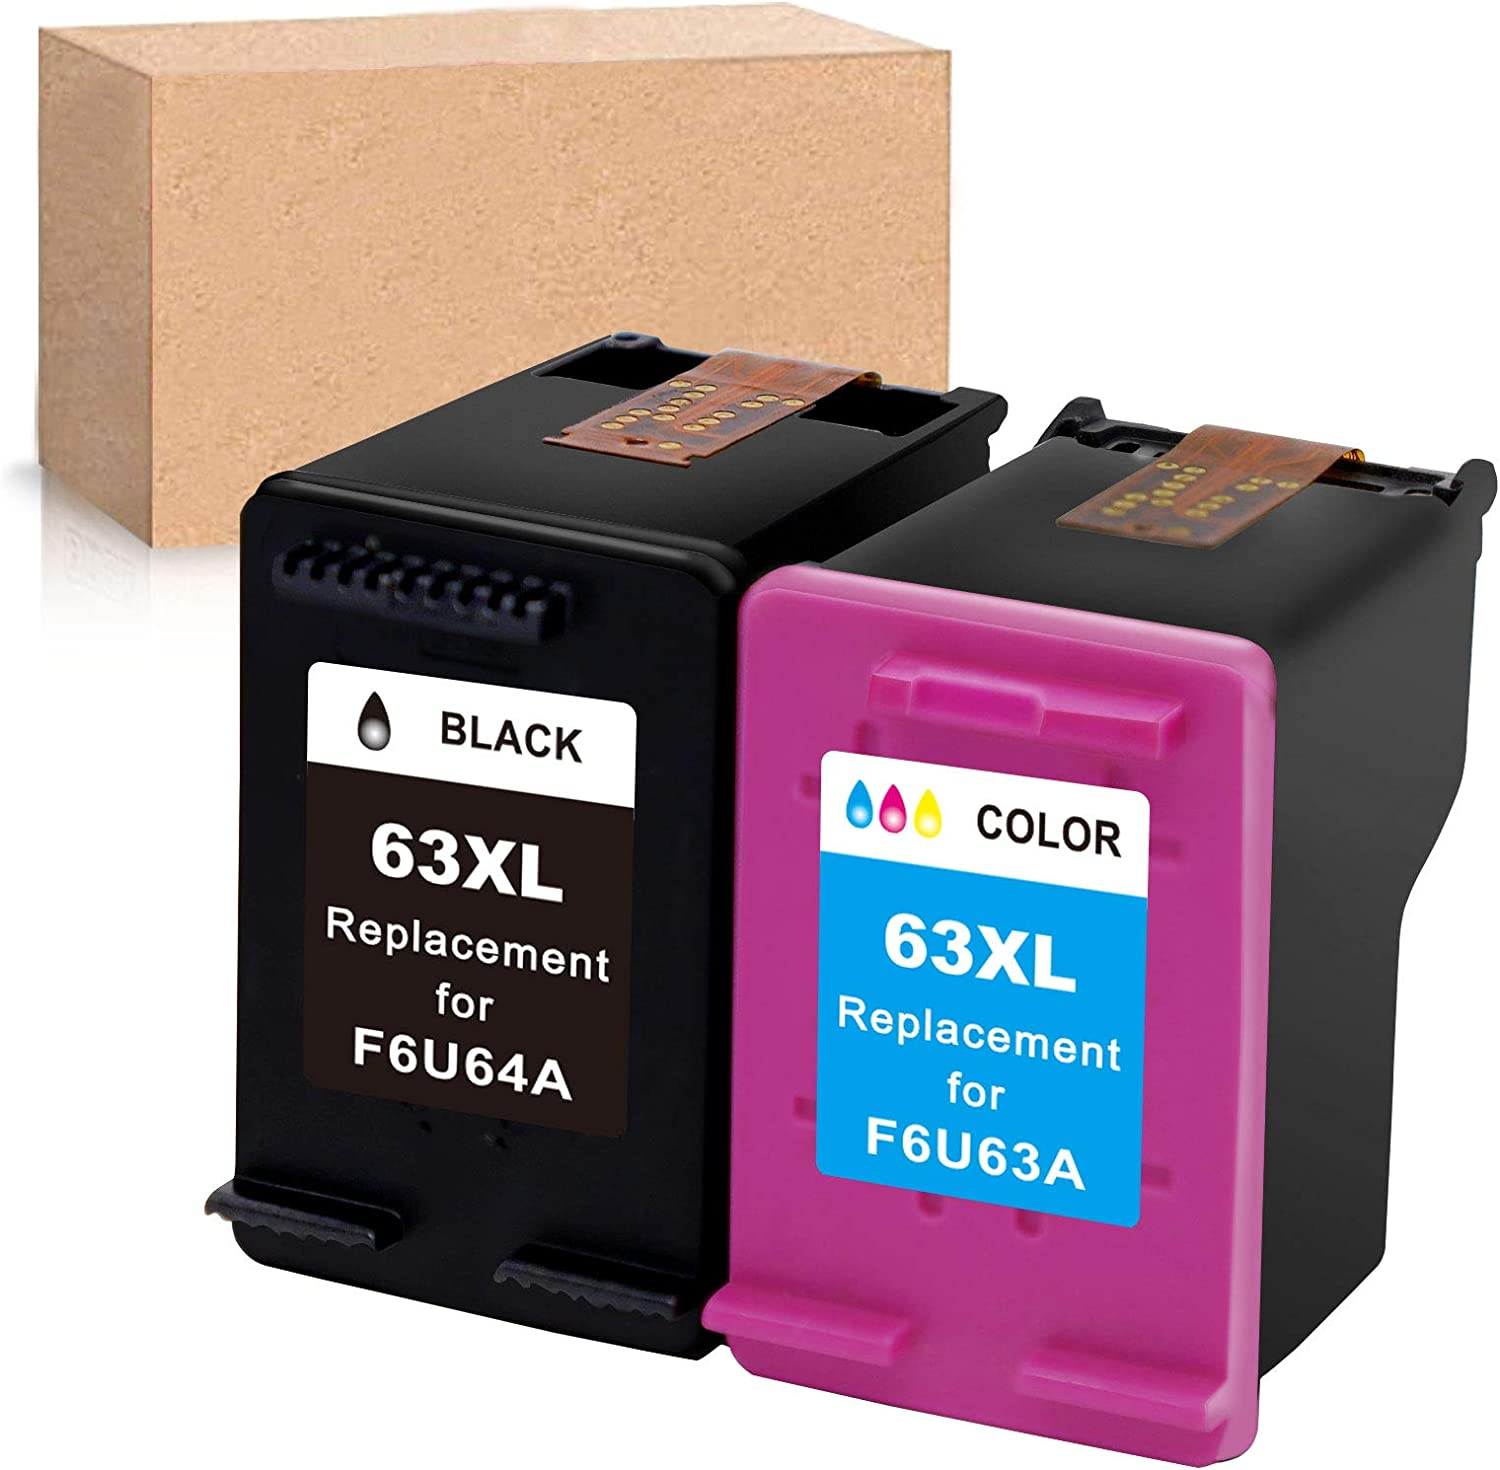 Economink Remanufactured Ink Cartridge Replacement for HP 63XL 63 XL Black Tri-Color Used in Envy 4520 3634 OfficeJet 3830 5252 4650 5258 4655 4652 5255 DeskJet 3636 1111 3630 1112 3637 3632 Combo